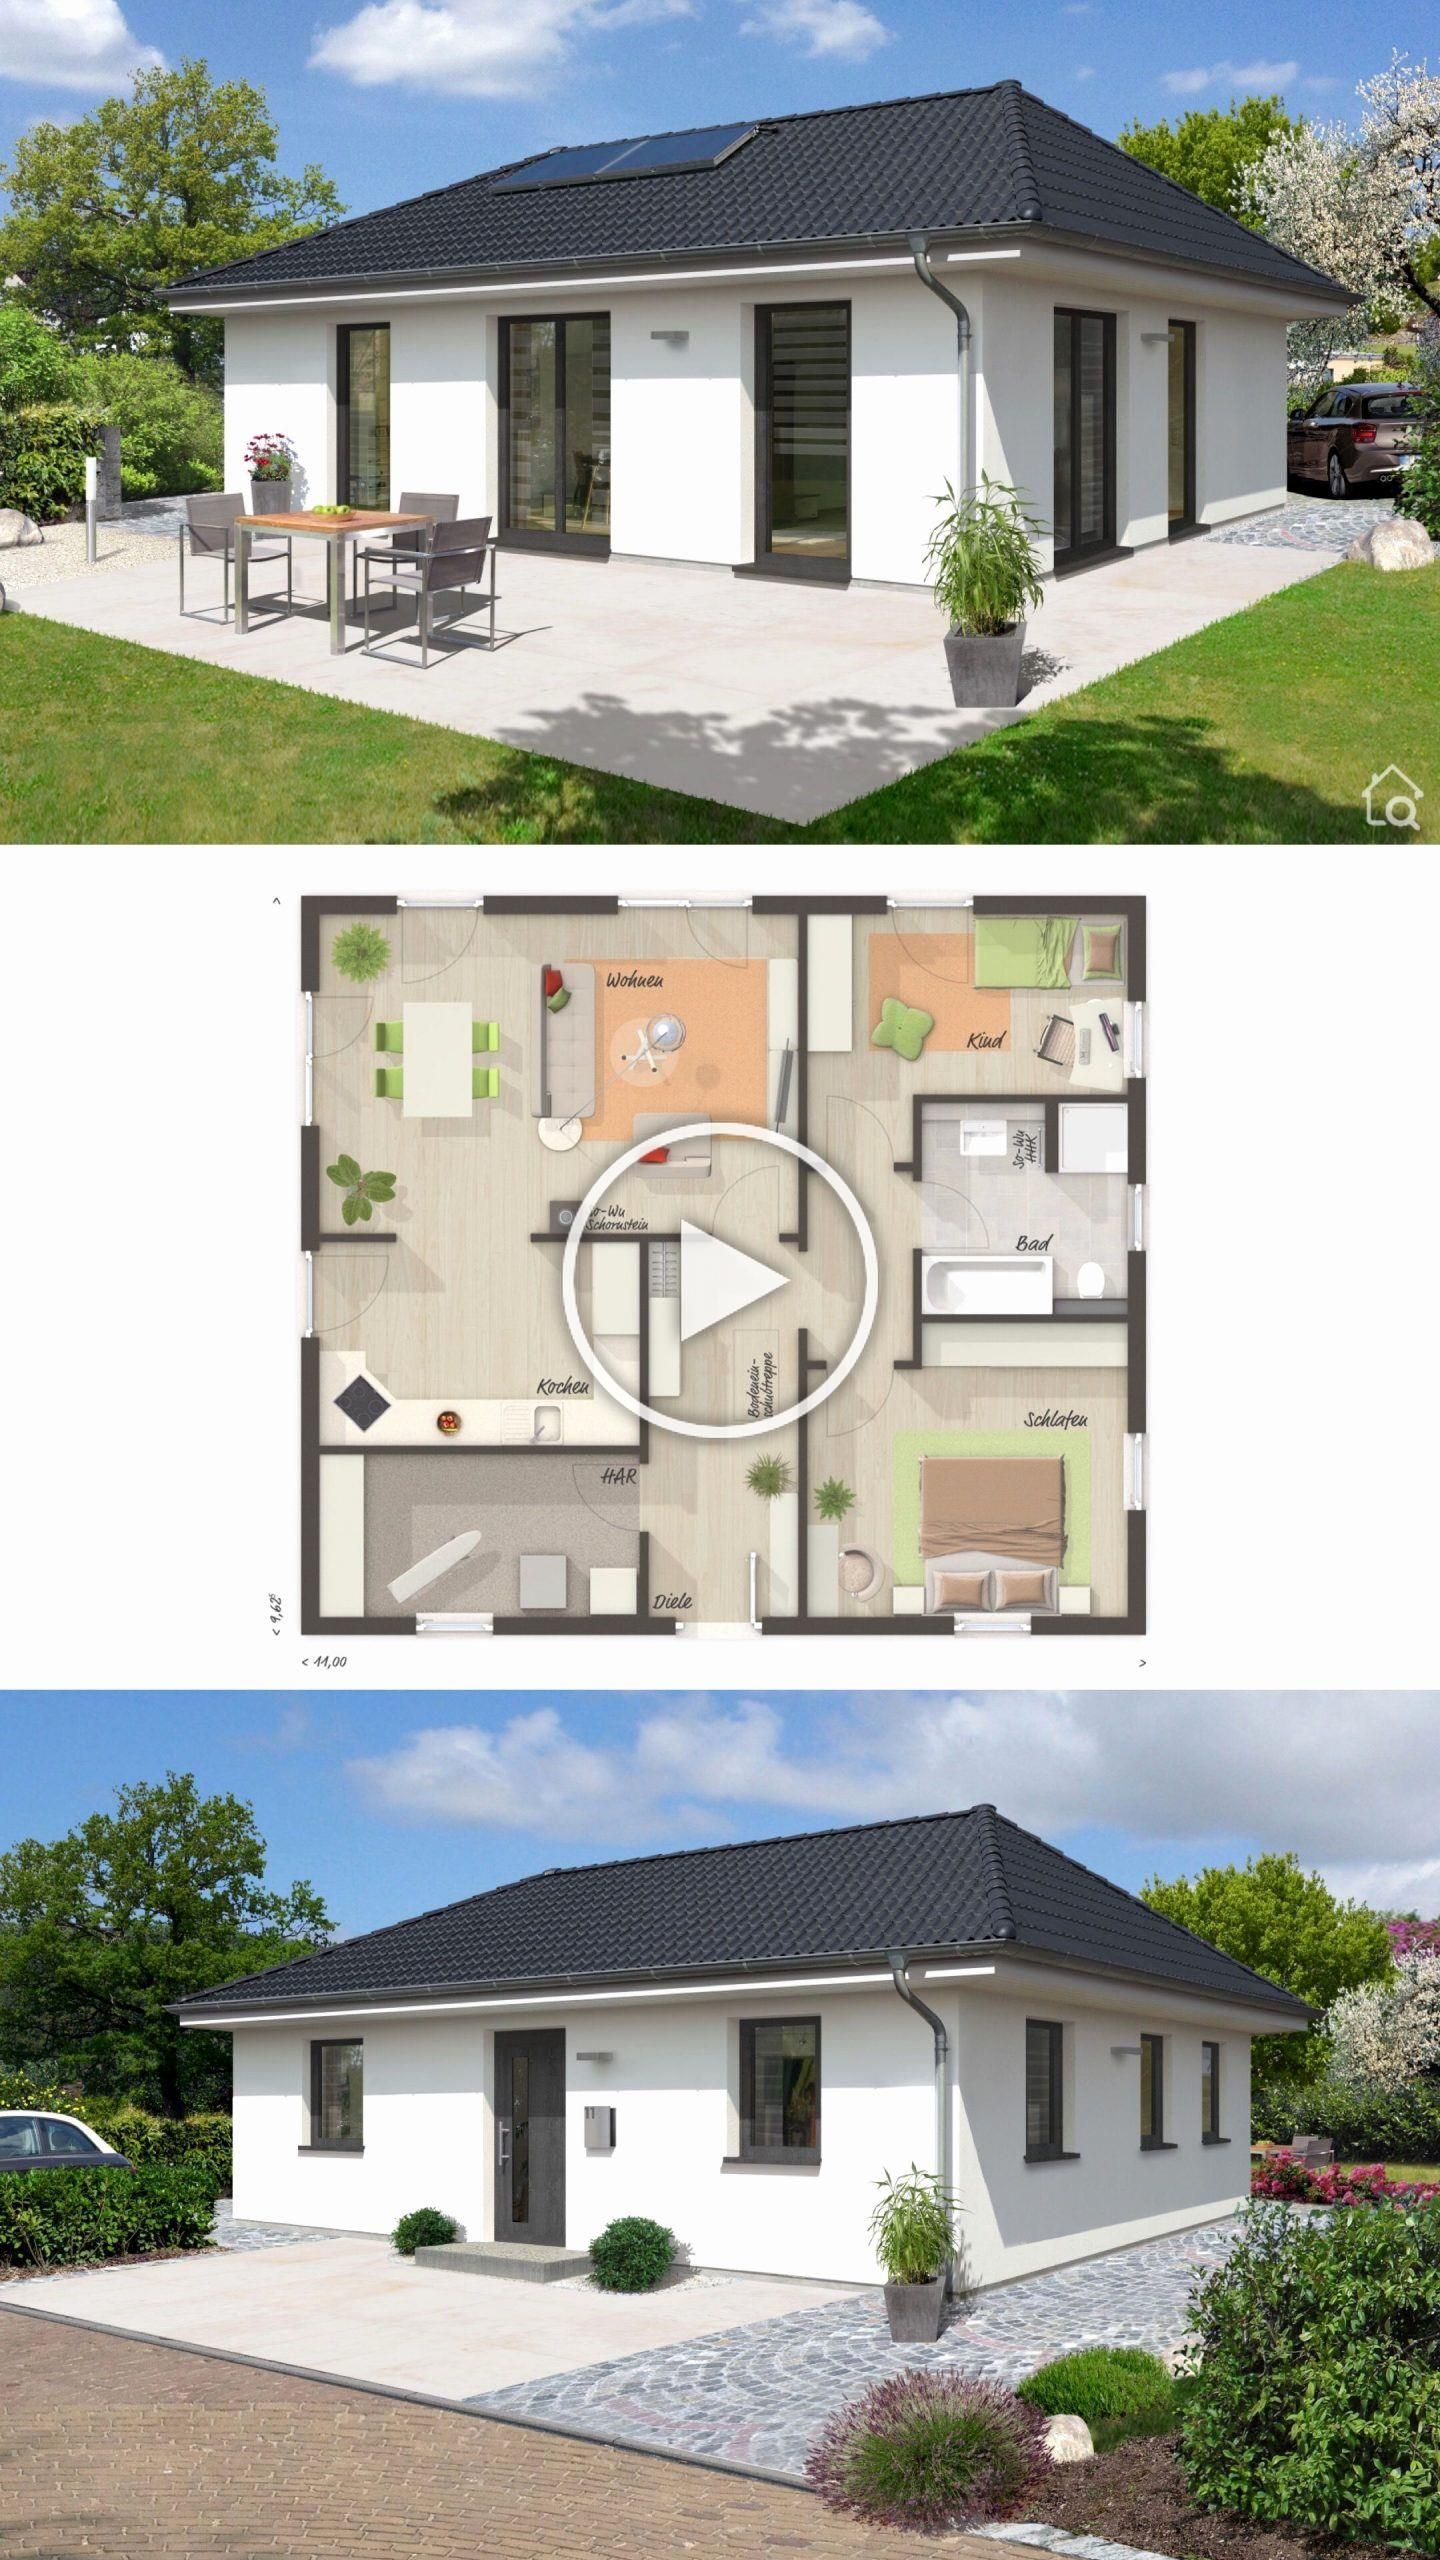 Hip Roof House Plans Contemporary New Bungalow House Floor Plans With E Level Modern In 2020 Building Plans House One Floor House Plans Bungalow House Floor Plans